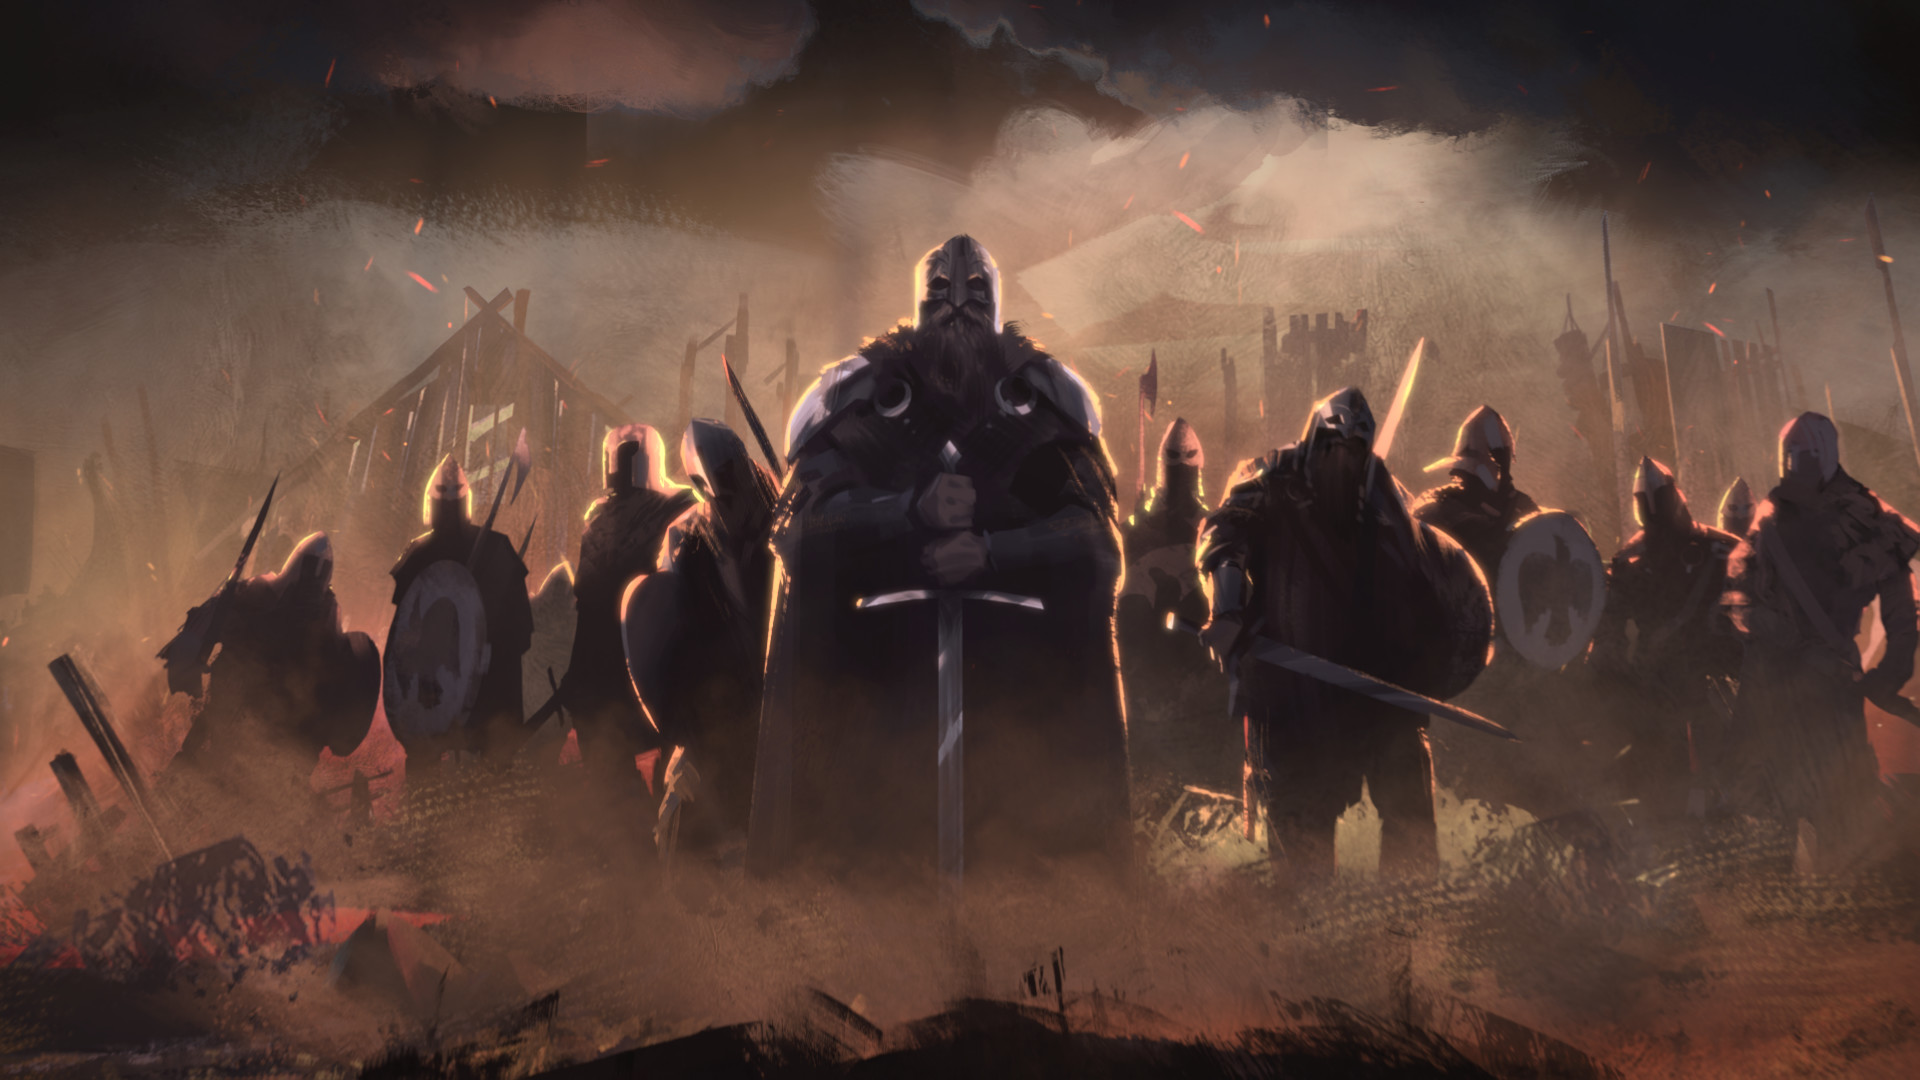 Total War Saga spin-off series' Thrones of Britannia announced